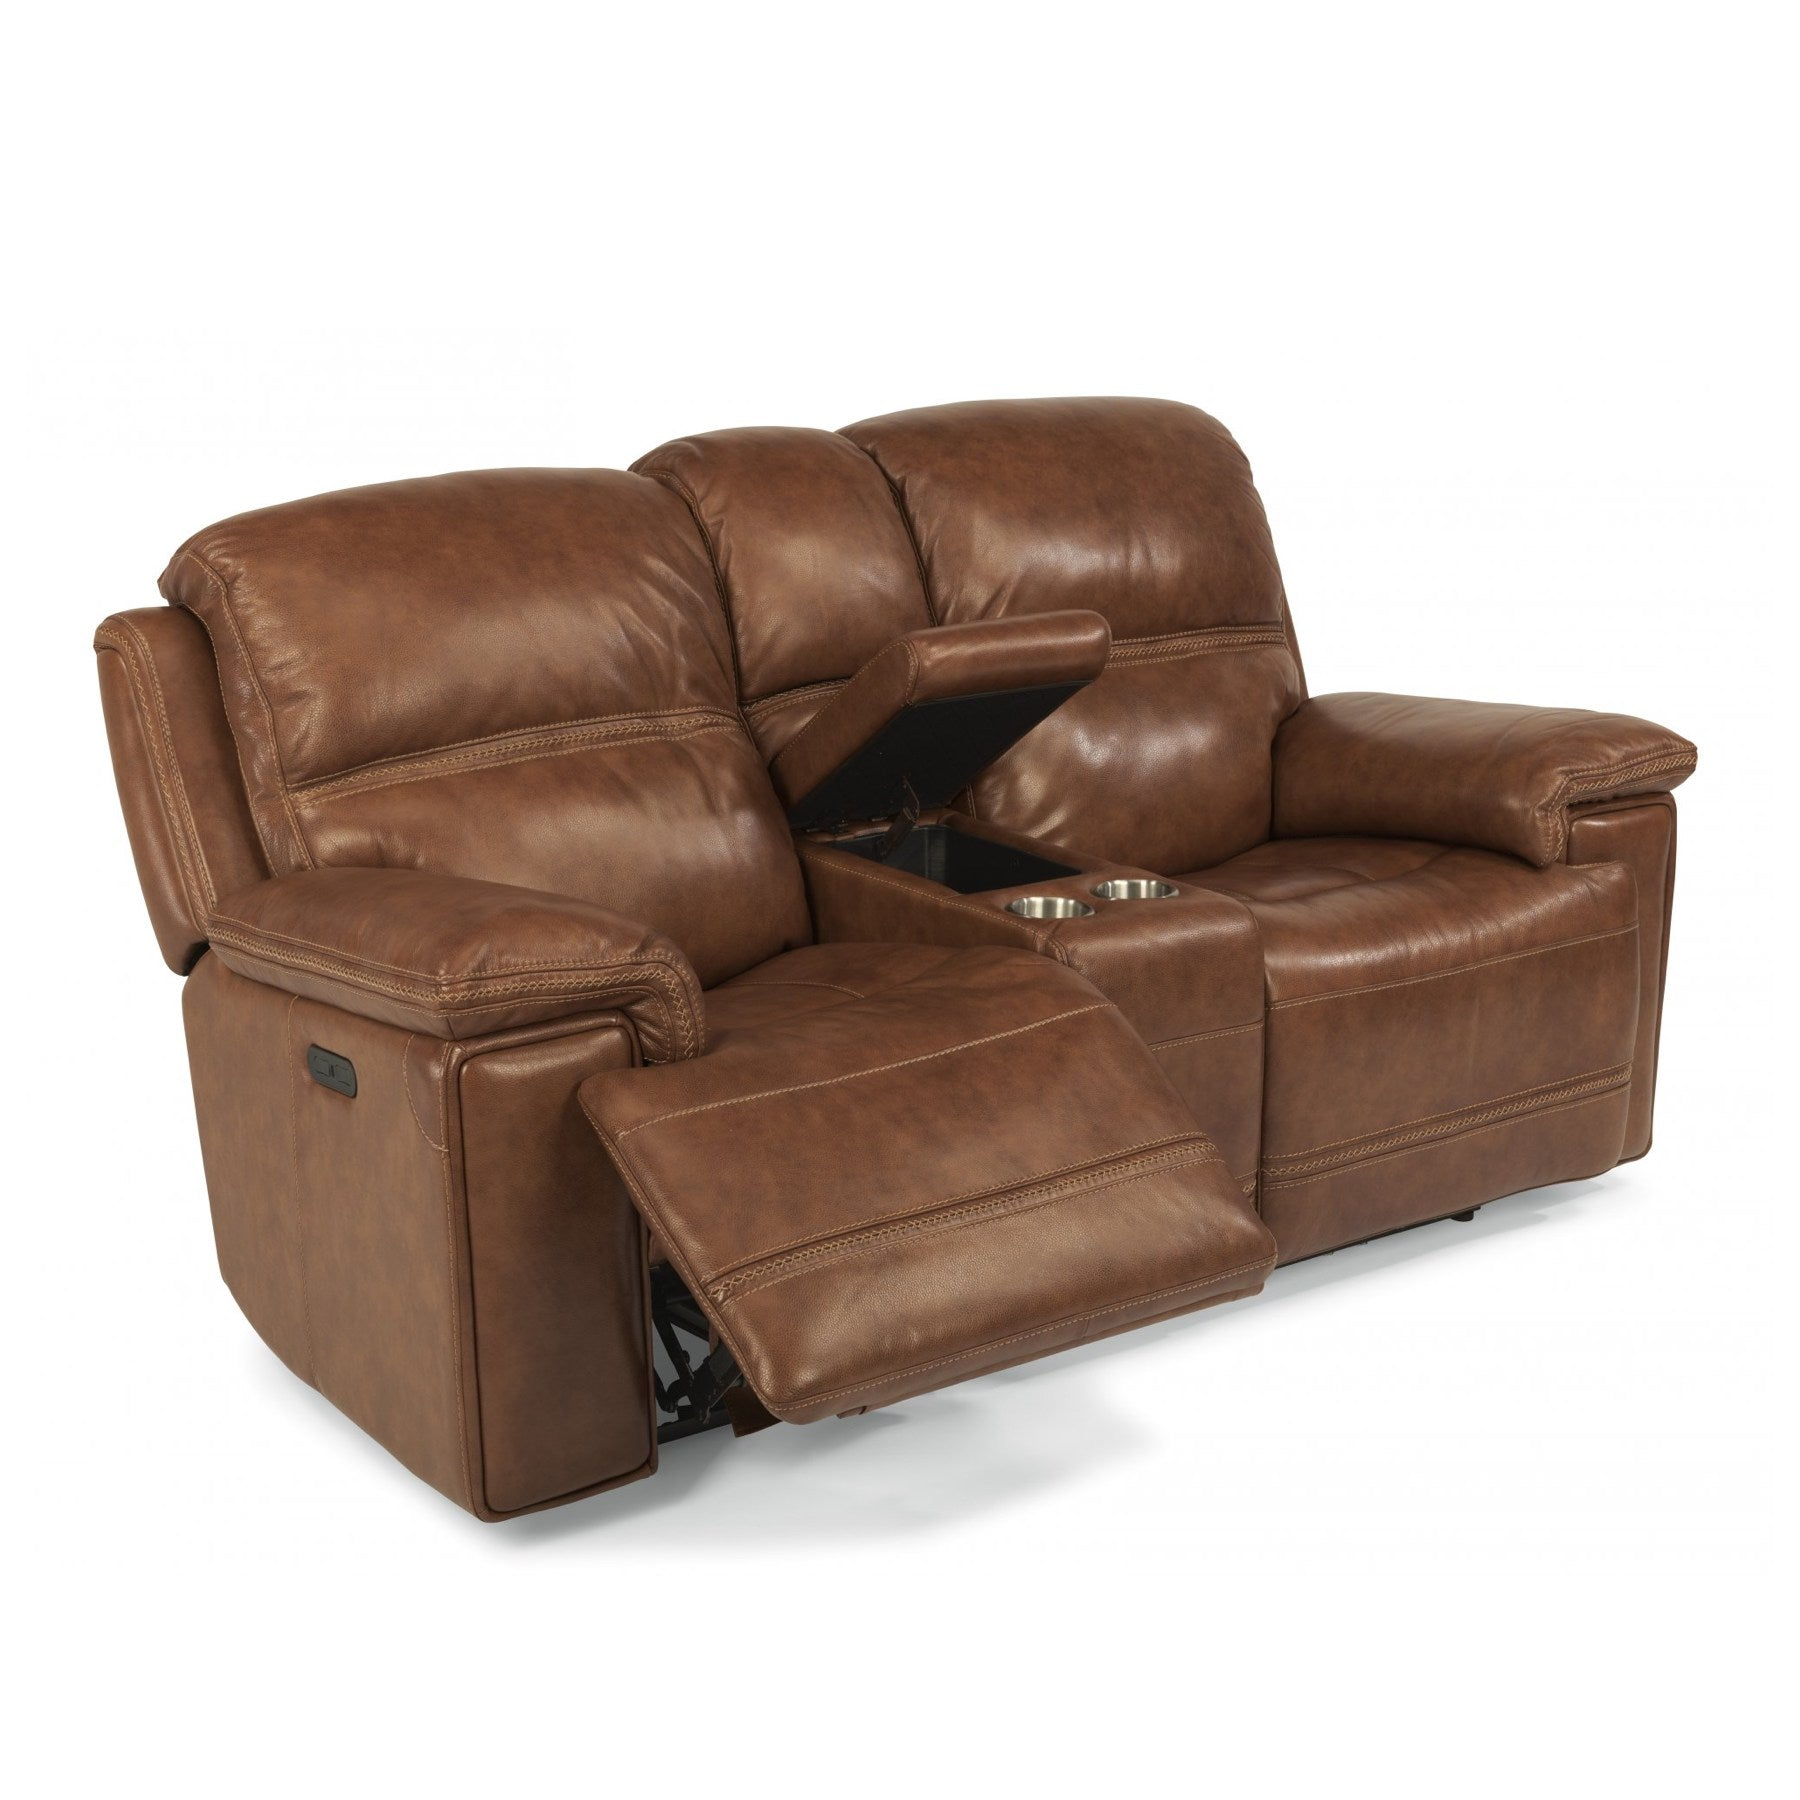 Fenwick Leather Power Reclining Loveseat With Console By